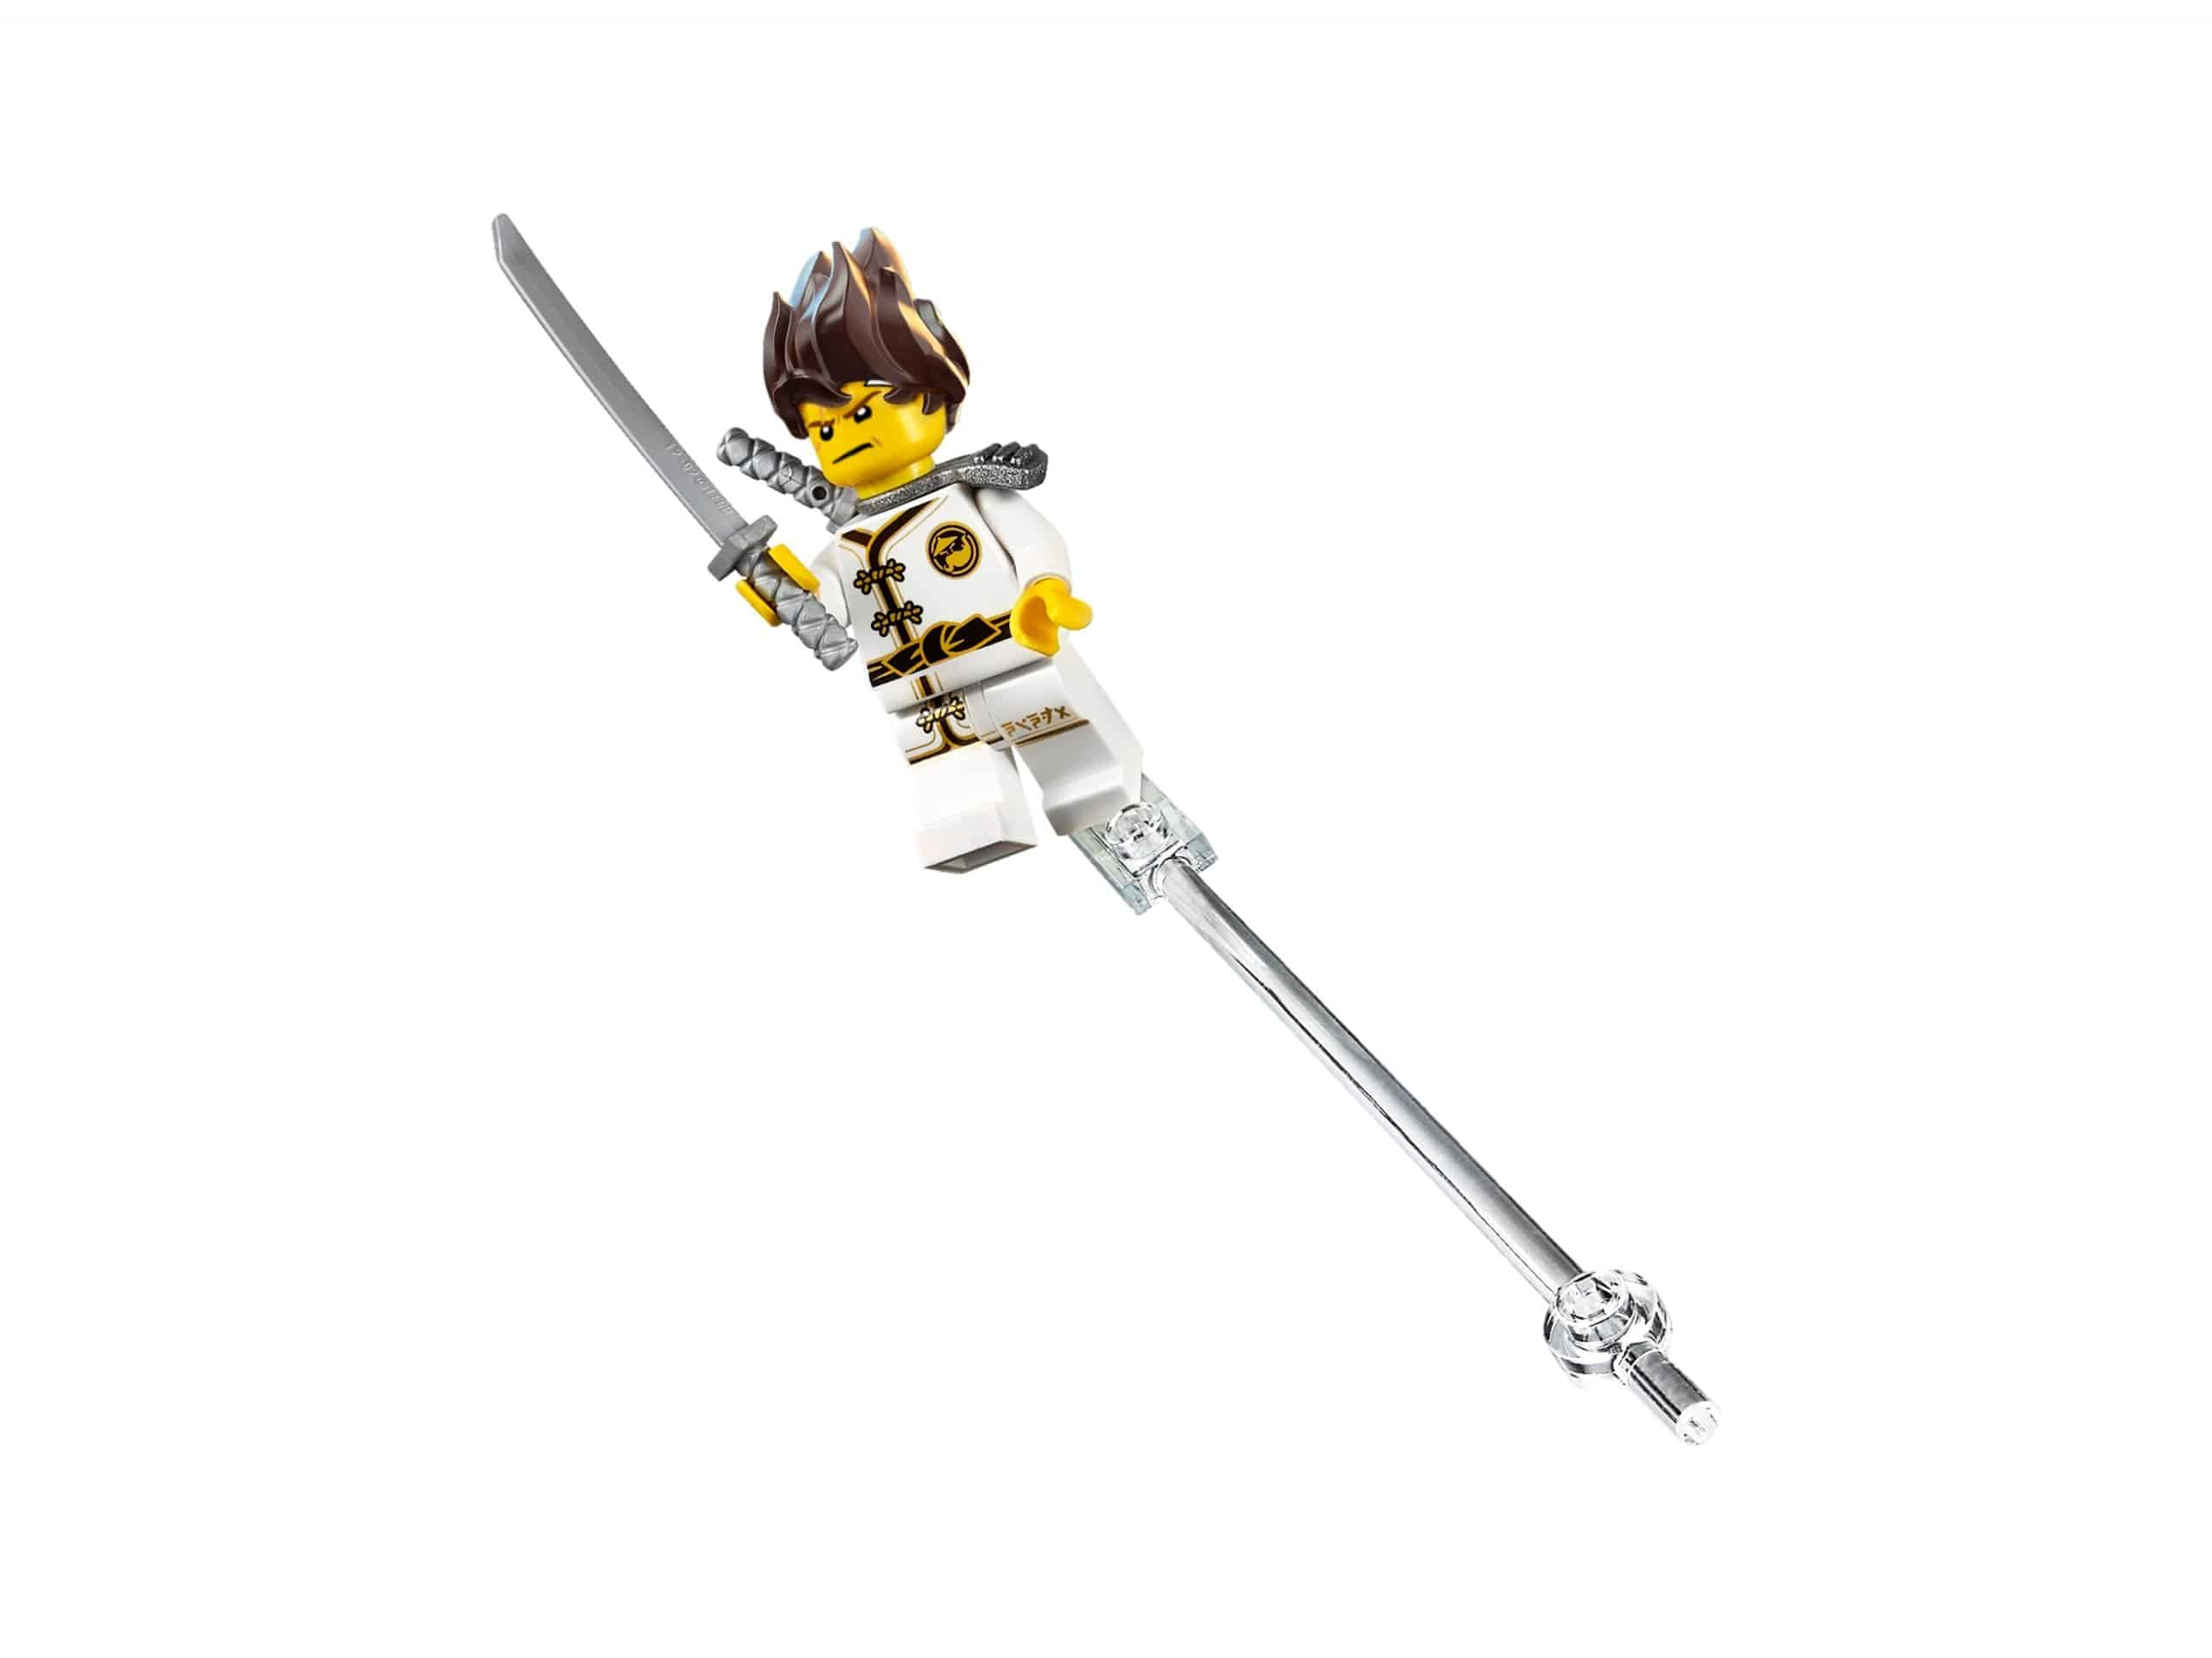 lego 853702 ninjago movie maker set scaled